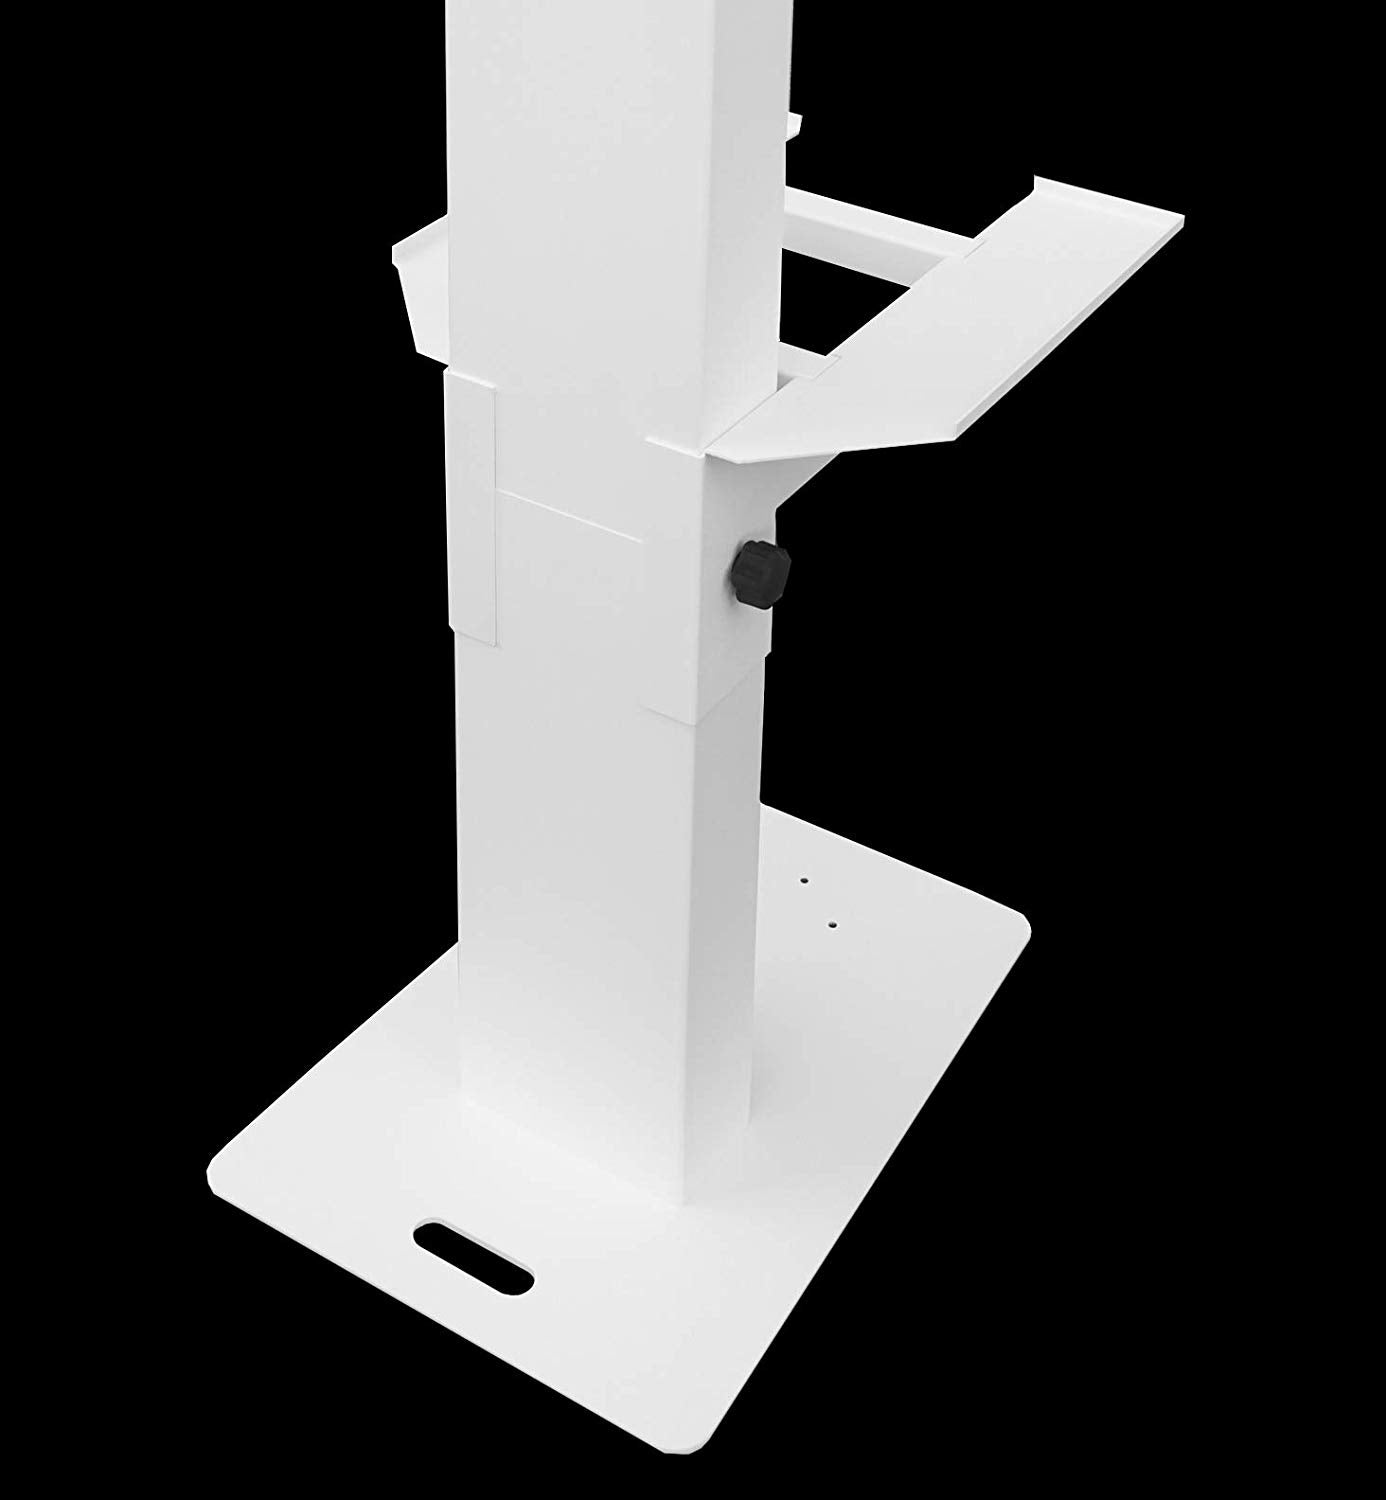 White T- Series Printer Shelf for Charmer / Glamify / T12 LED Photo Booth Shell